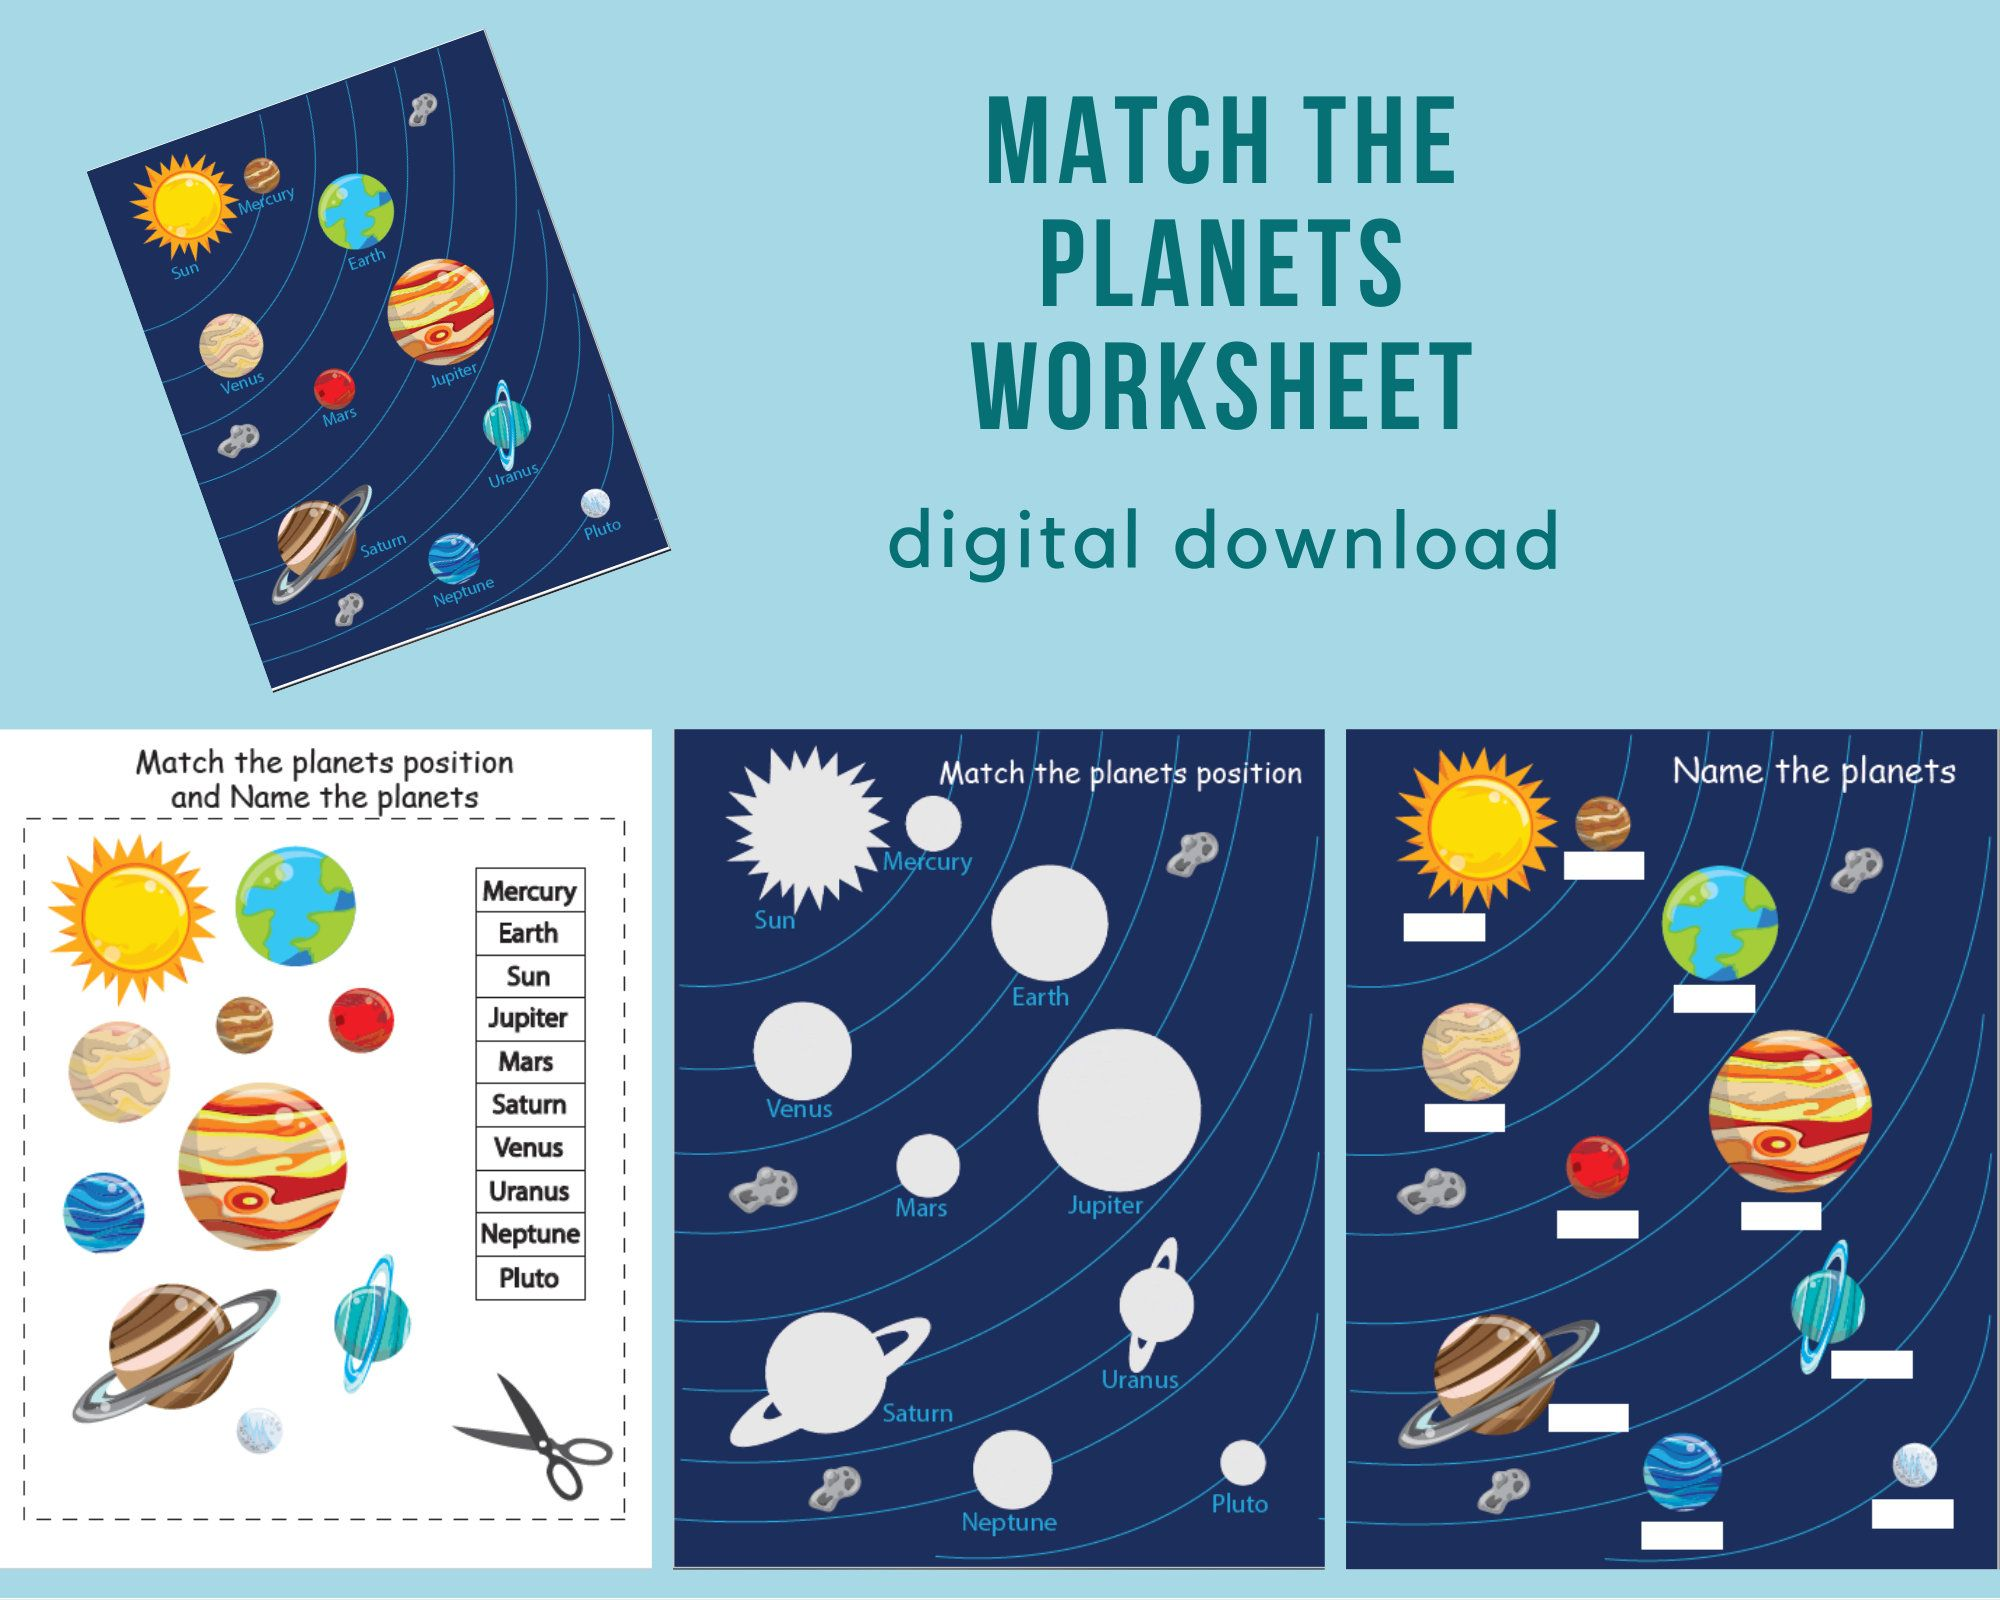 Match The Planets Worksheet Solar System Printable Busy Book Page Matching Game Busy Book Kindergarten Books Educational Printables [ 1600 x 2000 Pixel ]